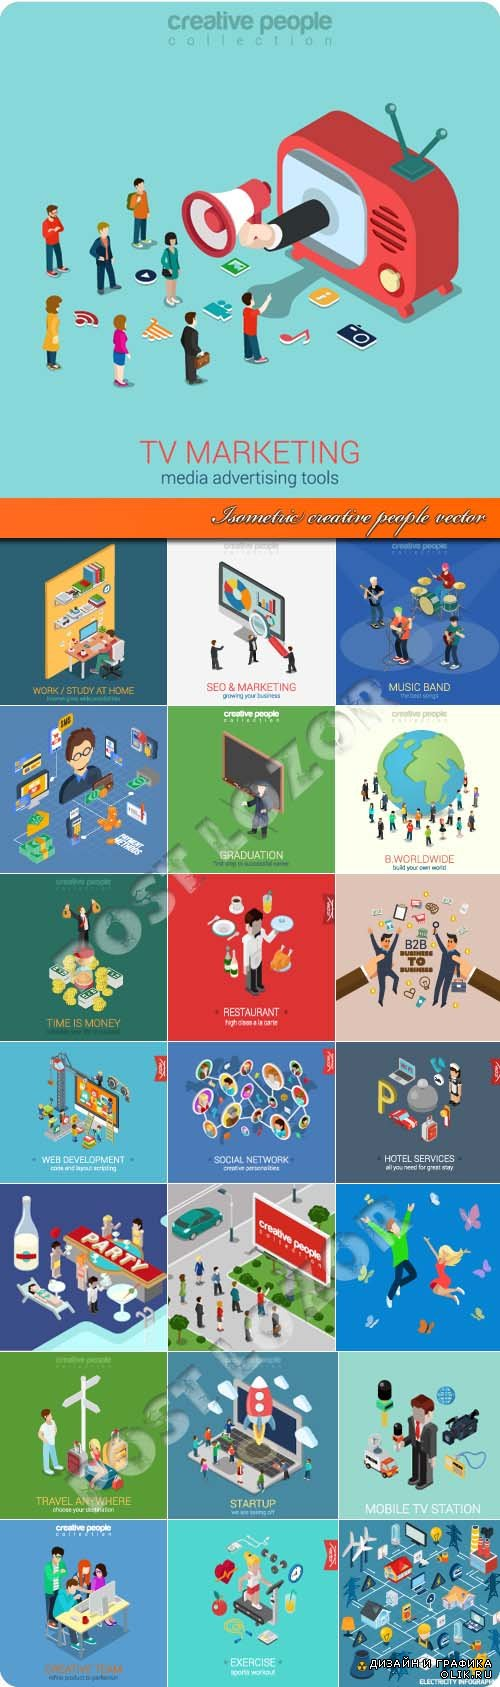 Isometric creative people vector